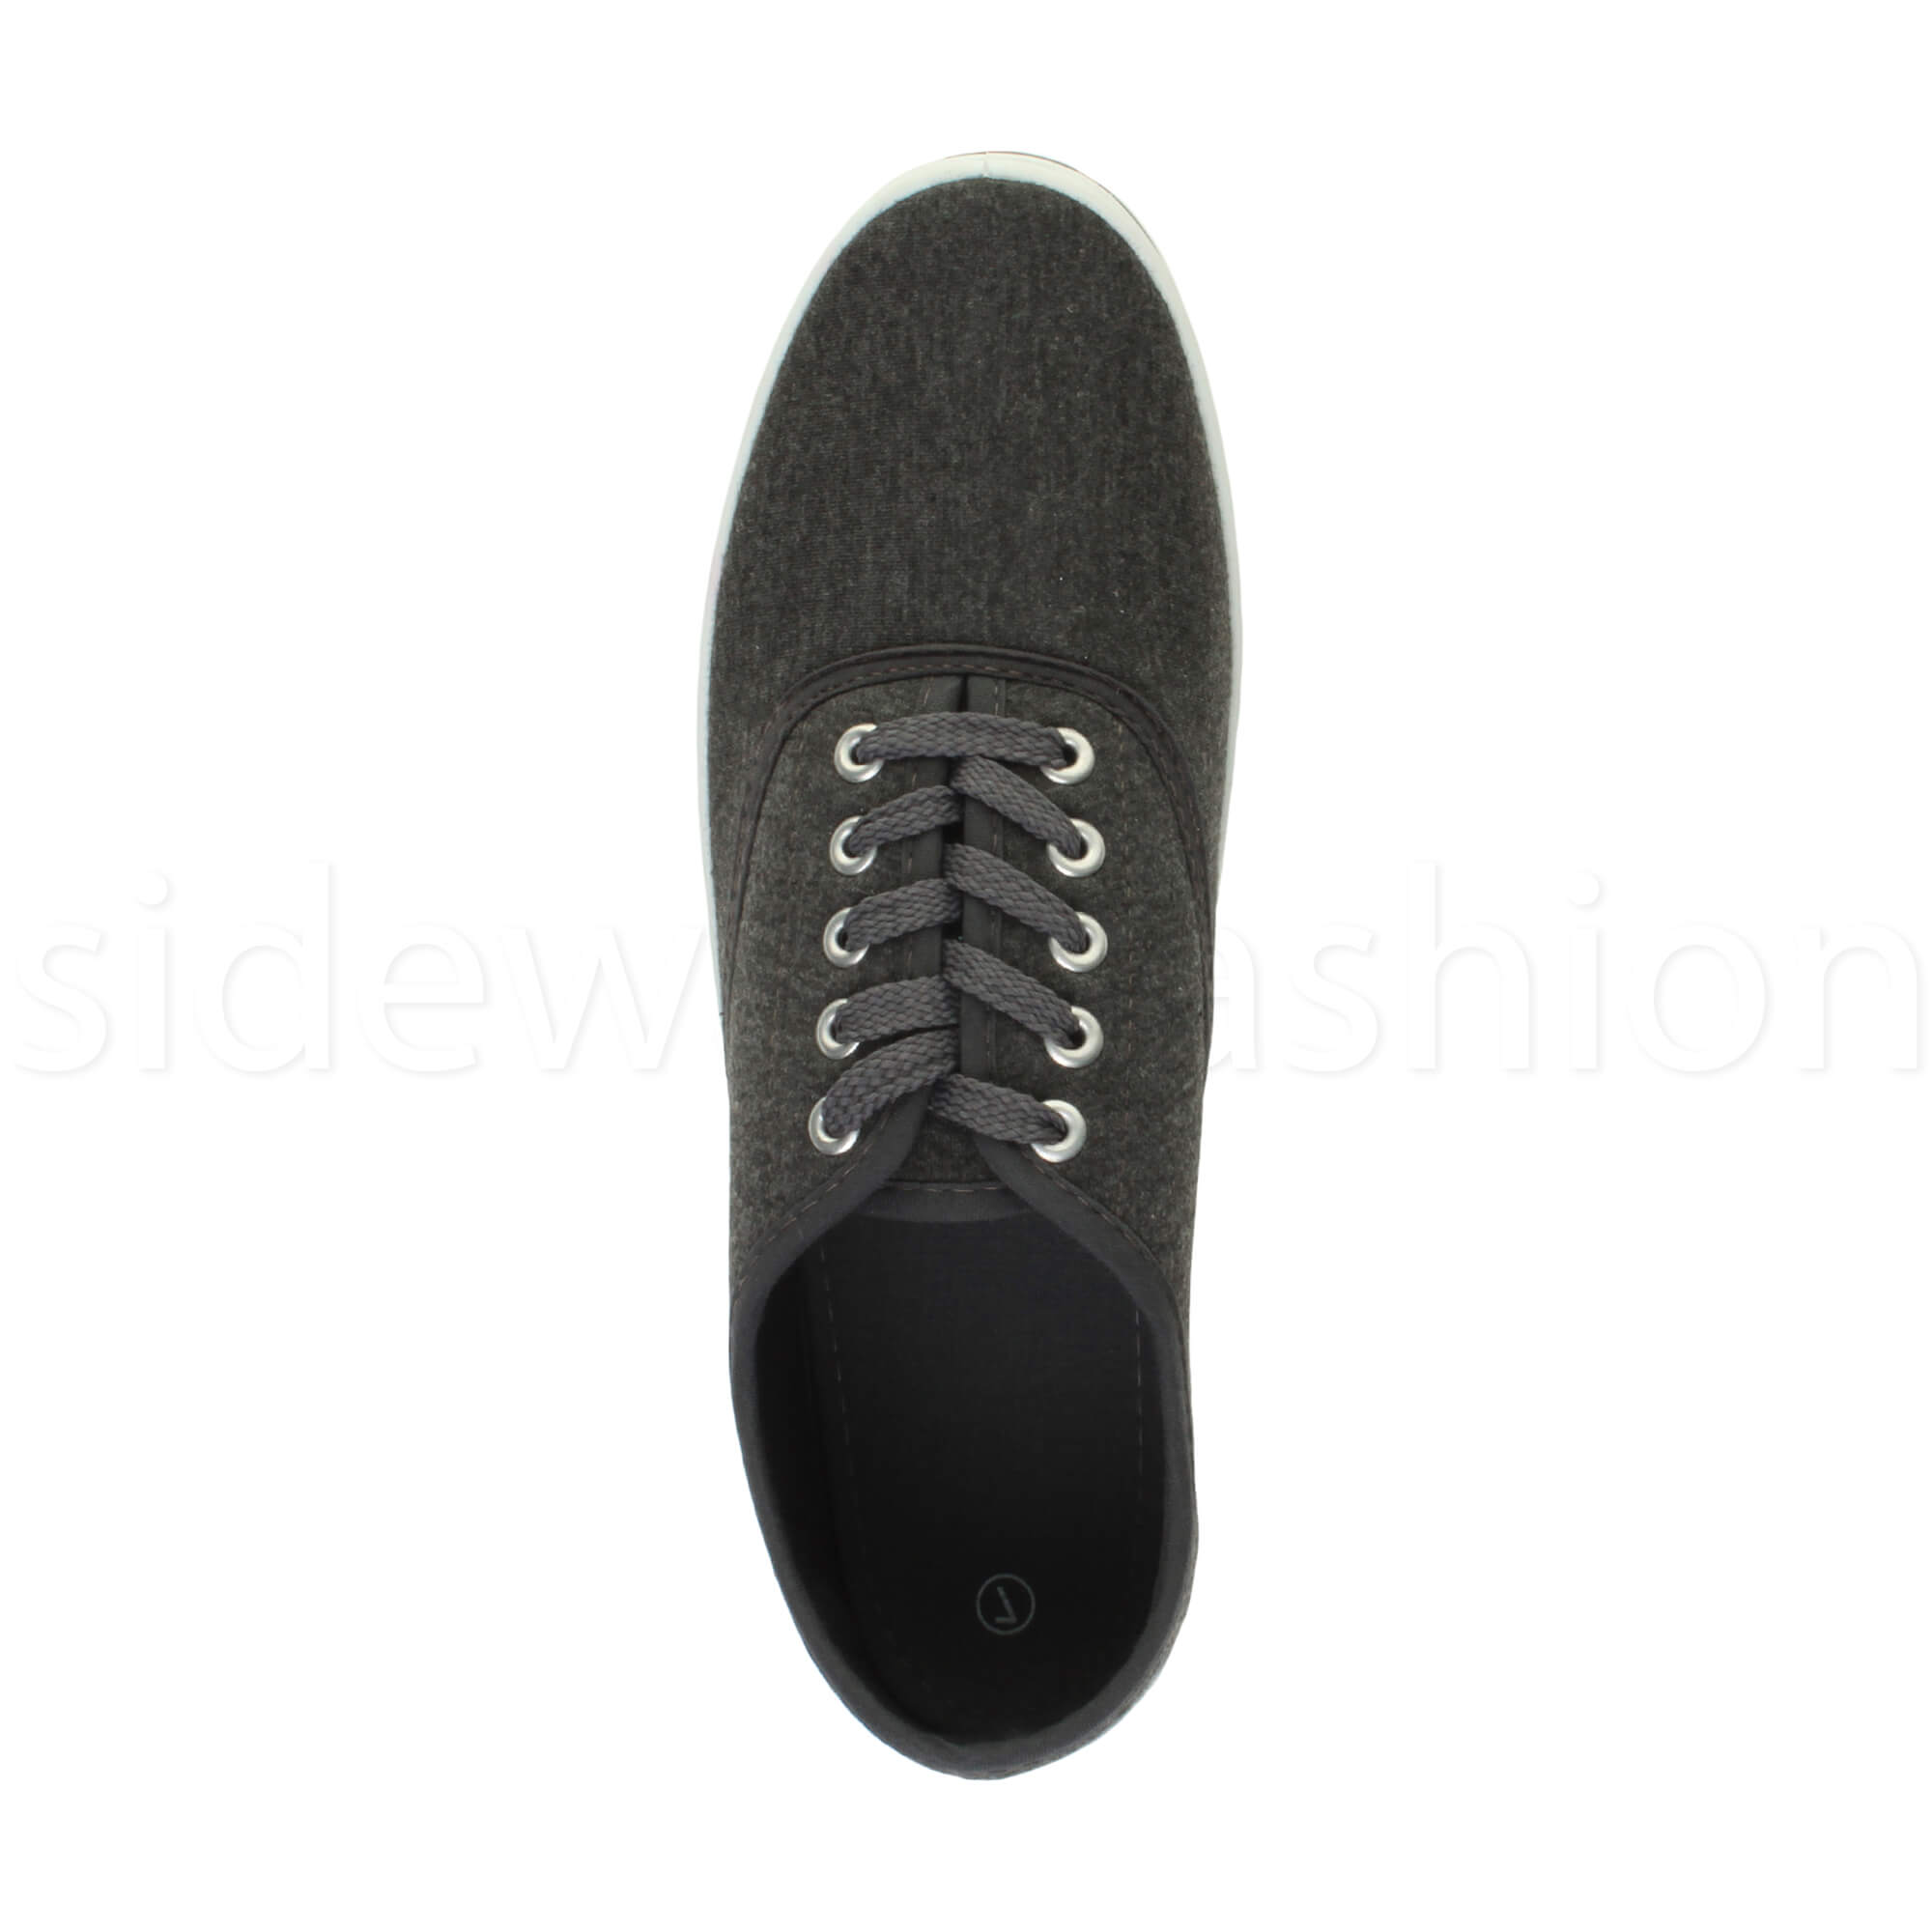 Mens-canvas-trainers-plimsoles-plimsolls-shoes-lace-up-pumps-size thumbnail 13